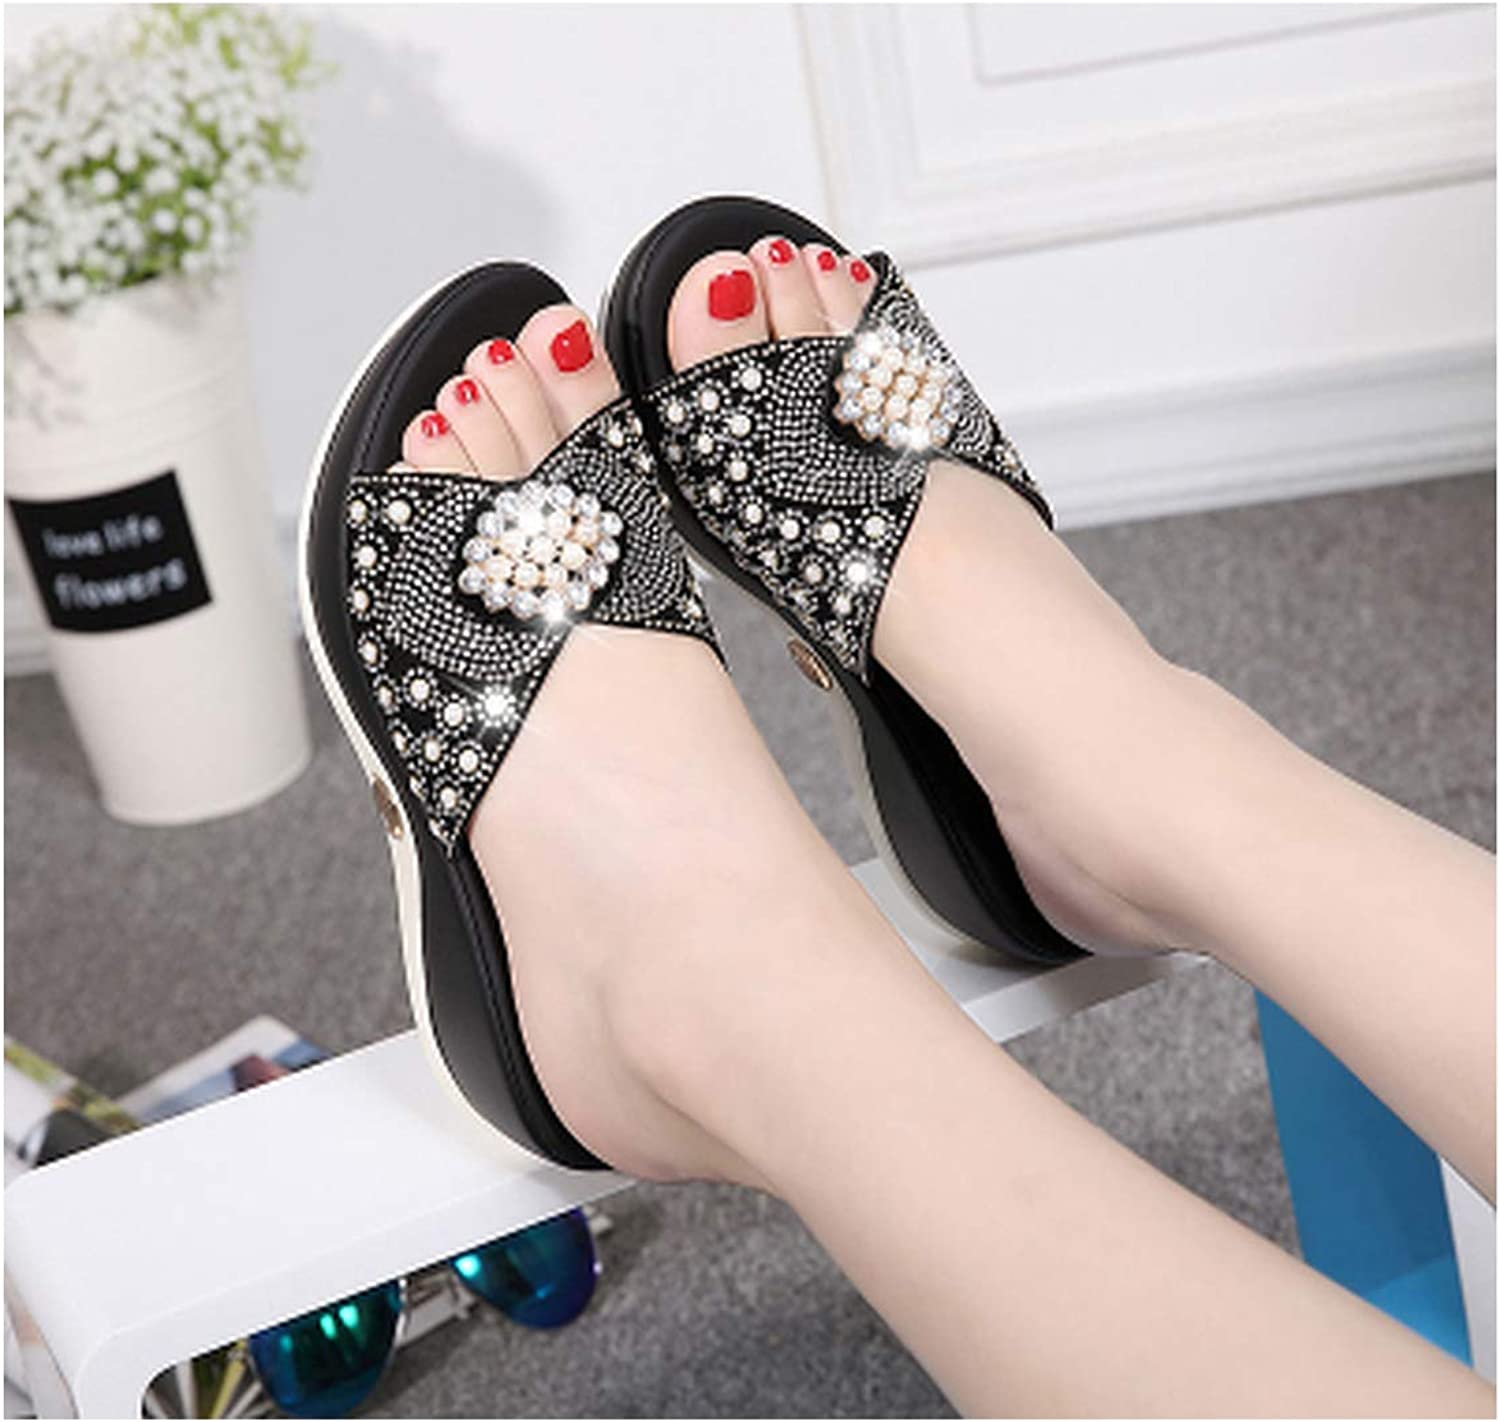 PREtty-2 geuine Leather Women's Casual shoes Summer Sandals